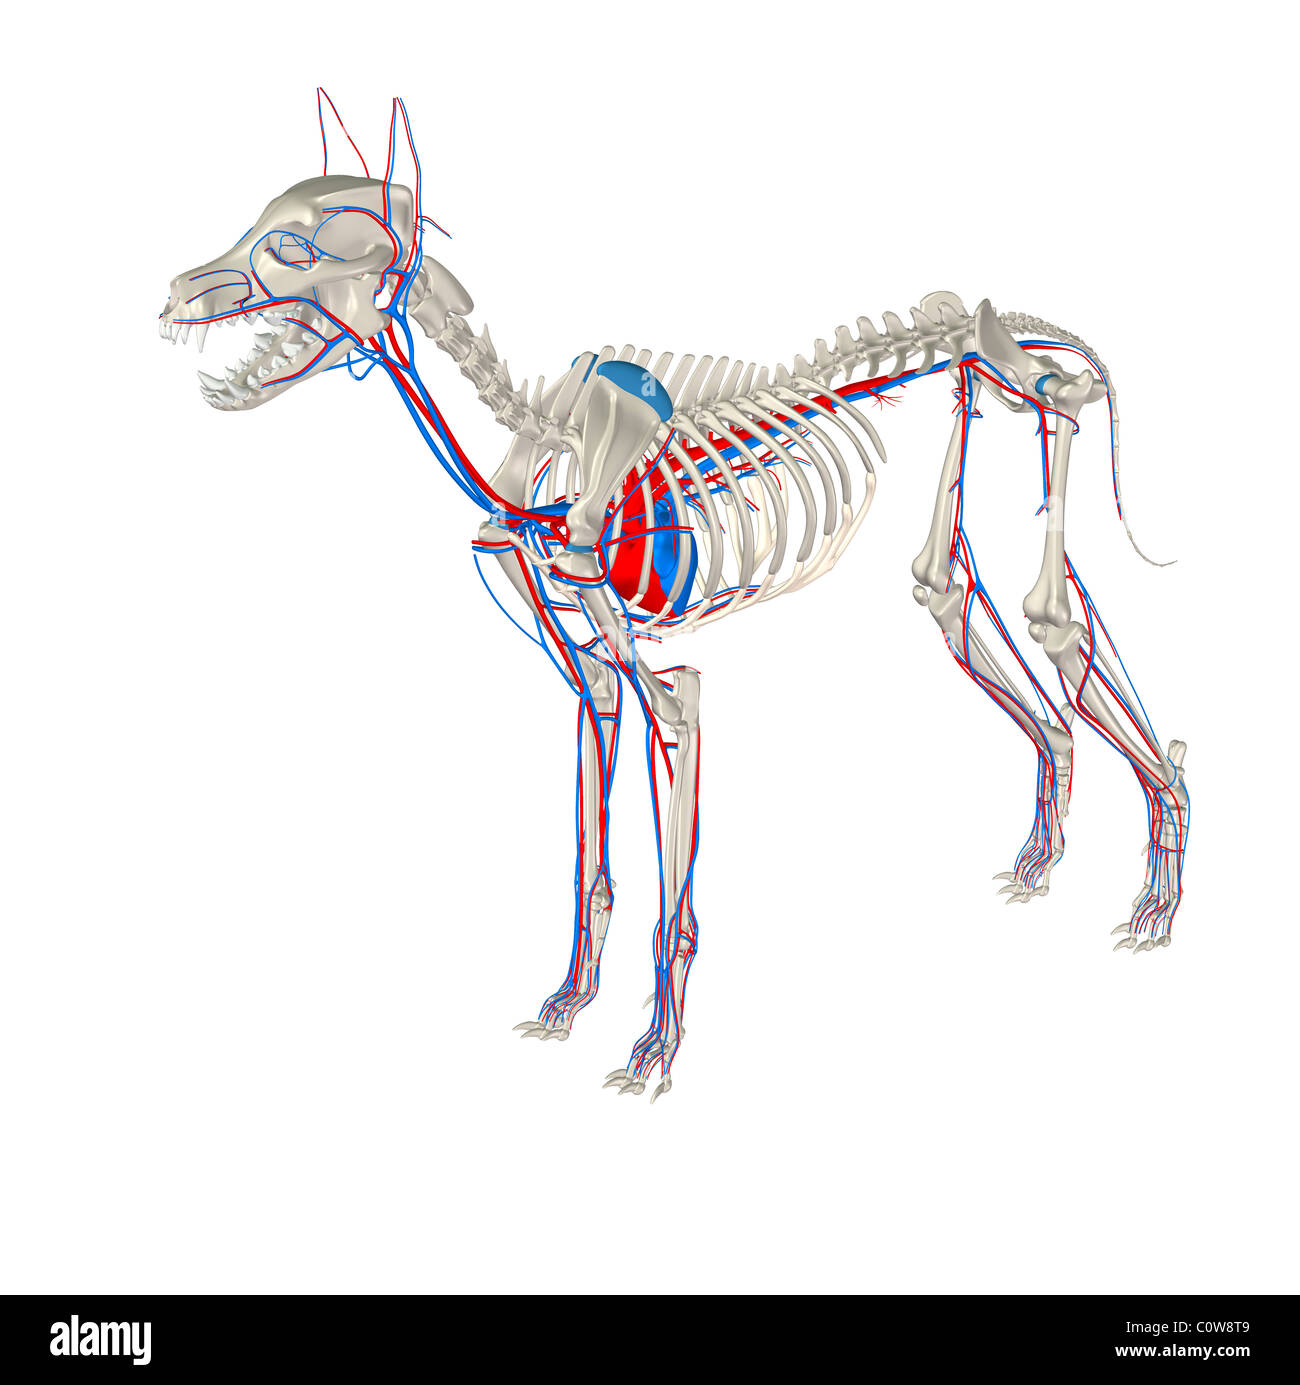 dog anatomy heart circulation Stock Photo: 34976489 - Alamy